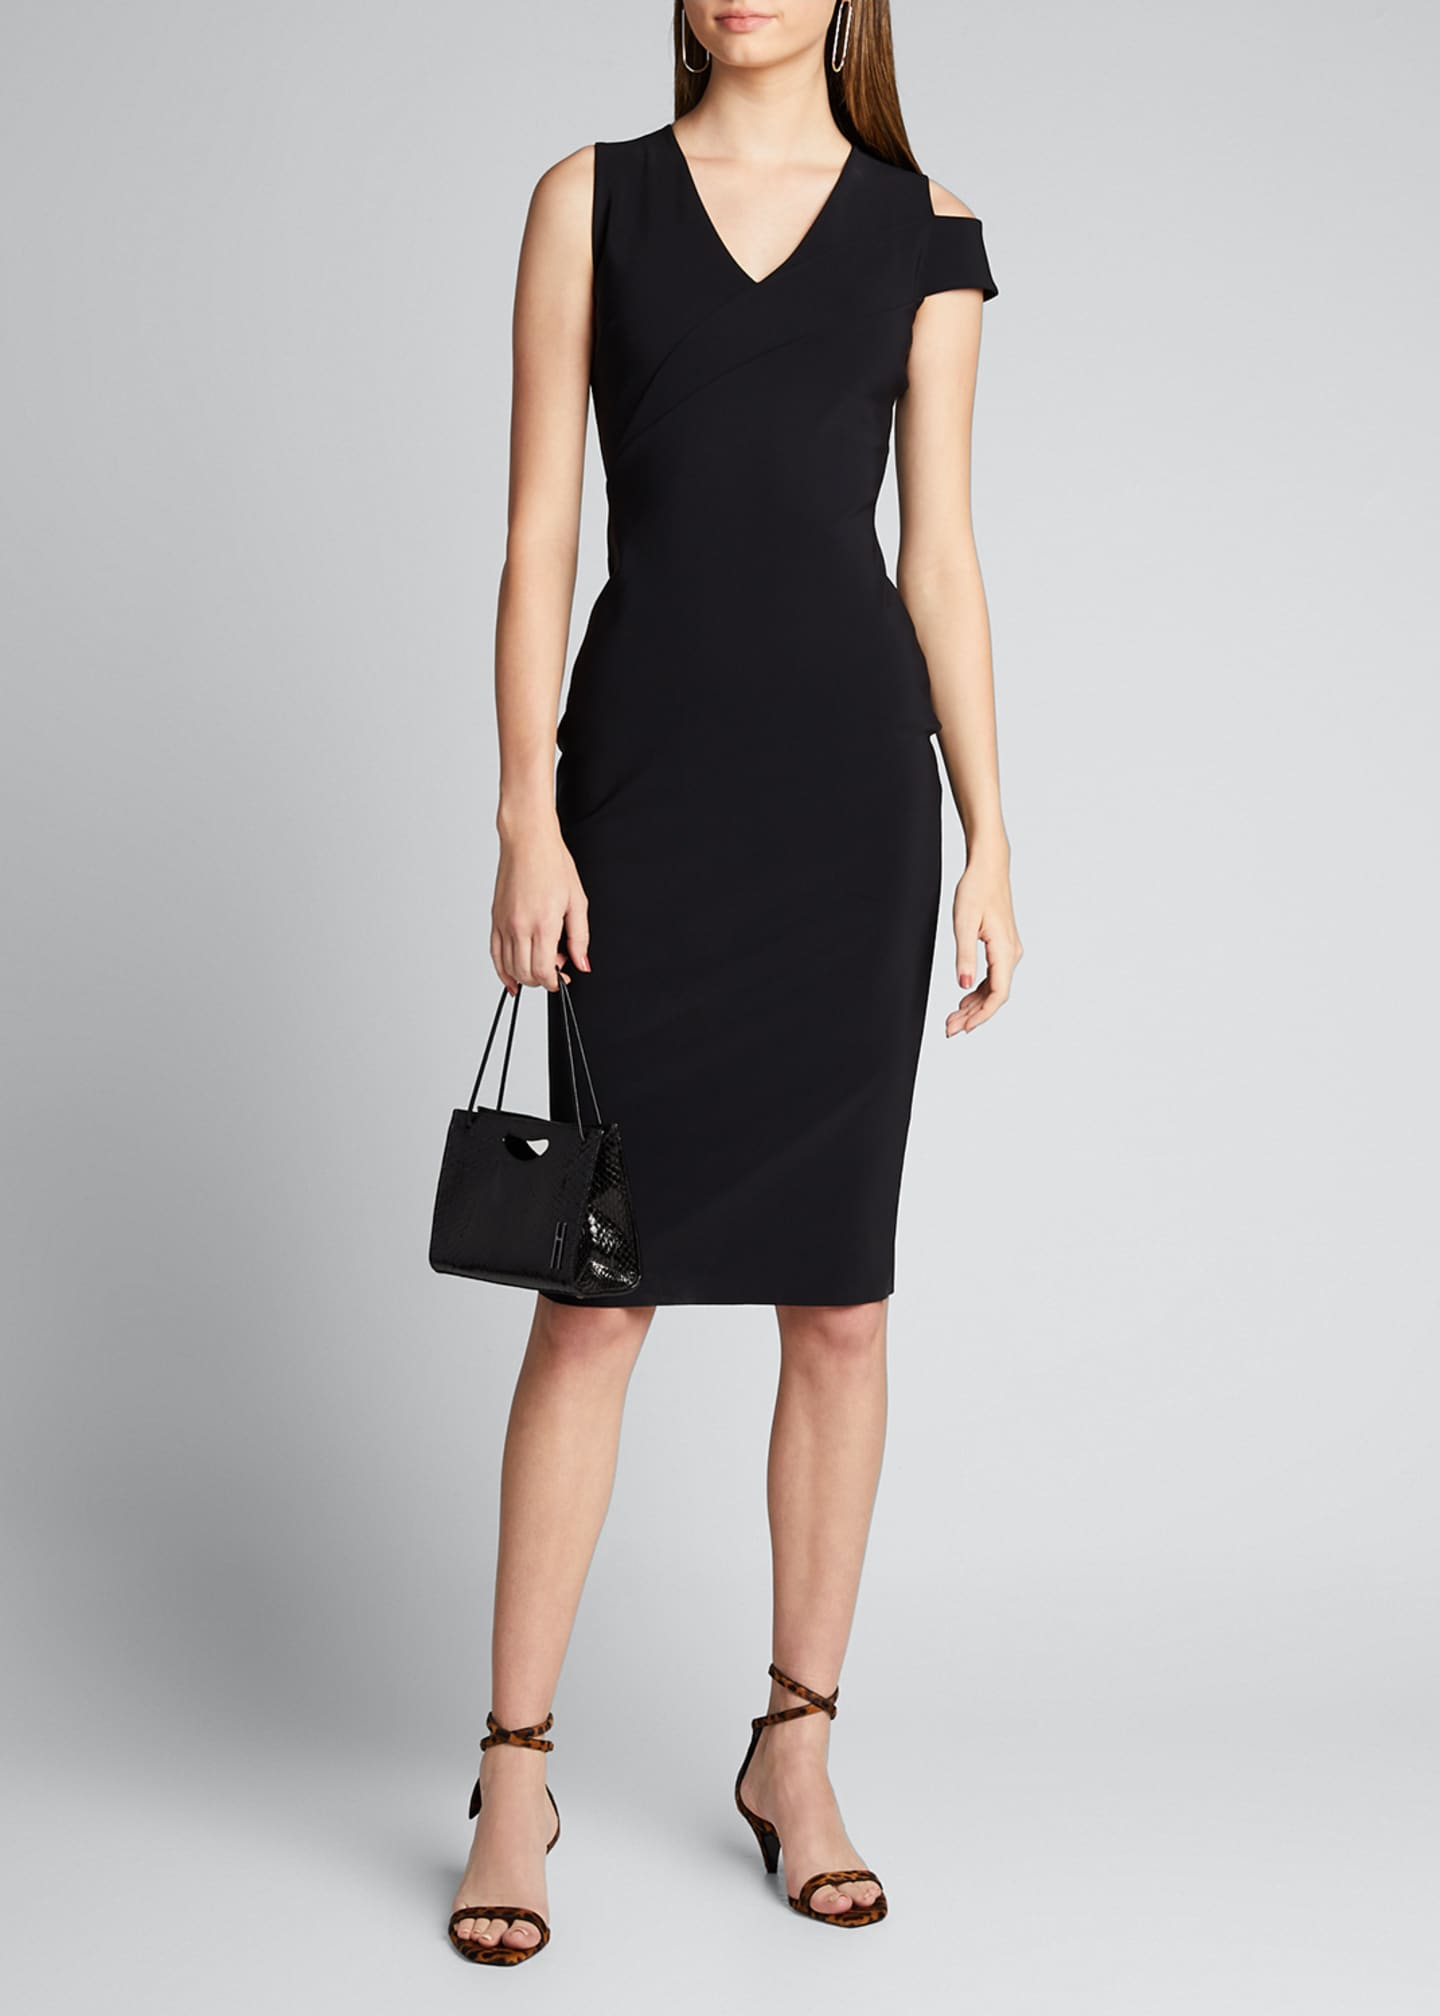 Chiara Boni La Petite Robe Asymmetric Shoulder V-Neck